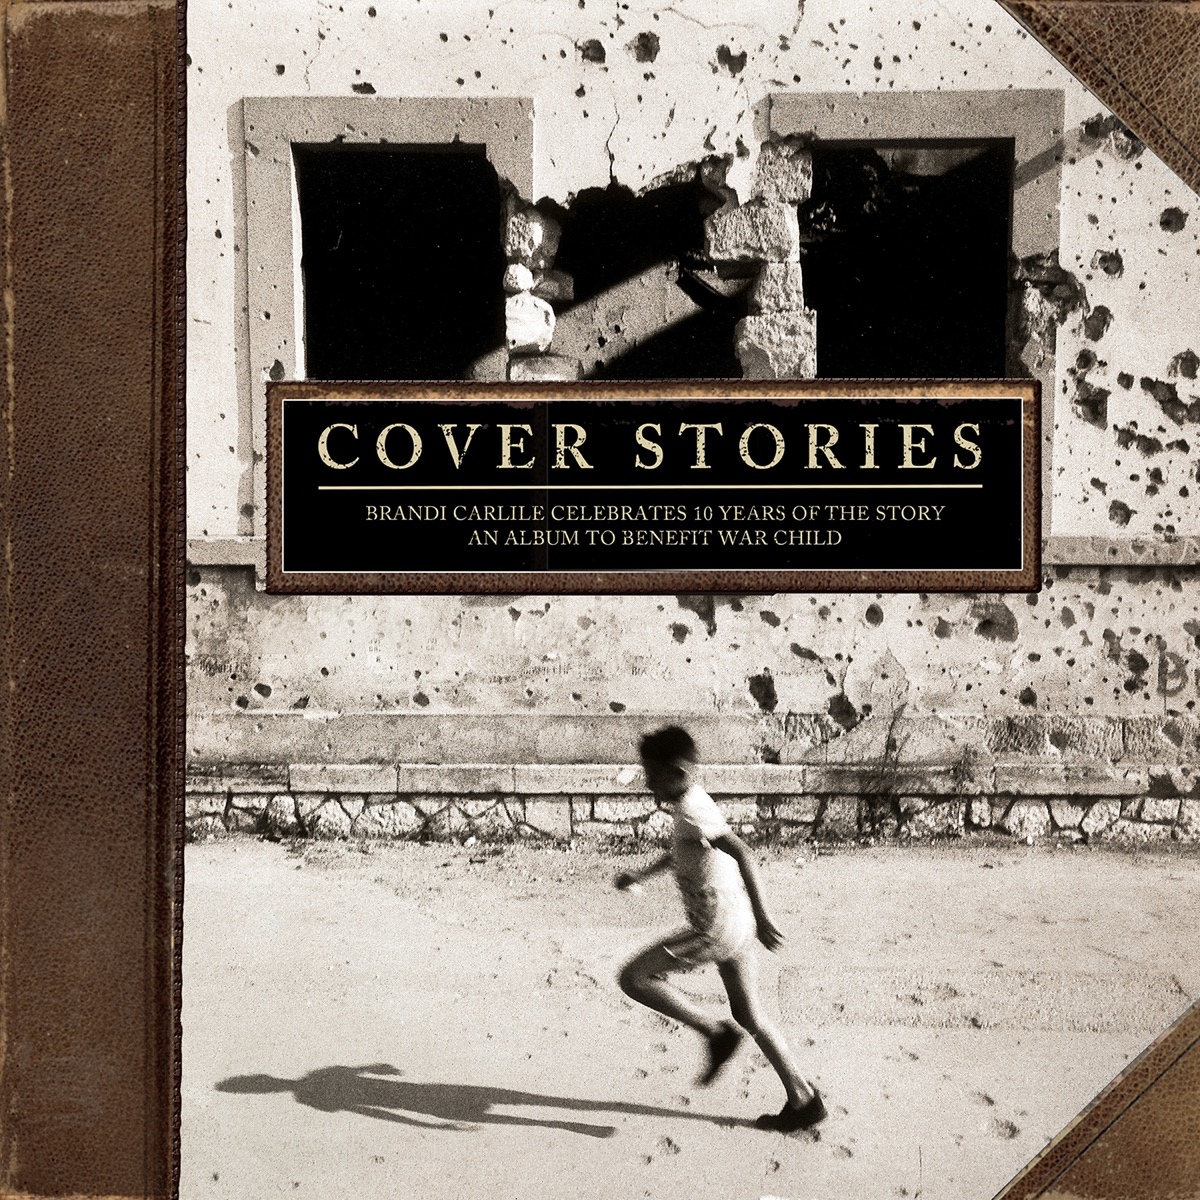 Cover Stories Brandi Carlile Celebrates 10 Years of the Story An Album to Benefit War Child Various Artists CD cover